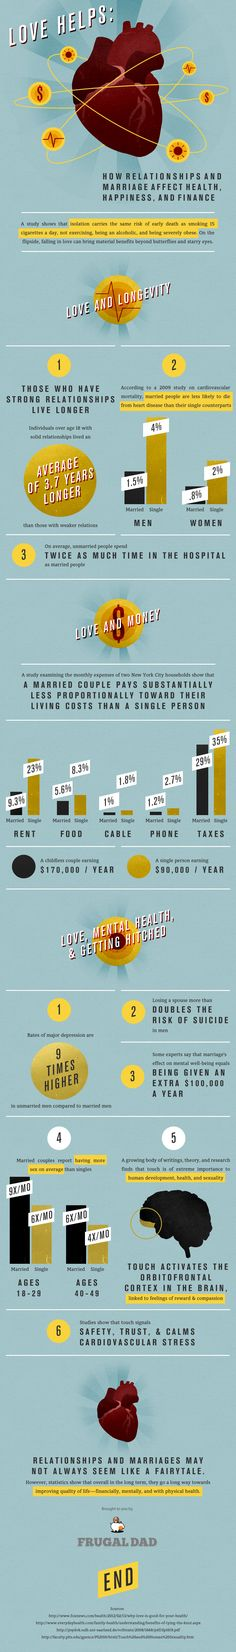 Love Helps: How relationships & marriage affect health, happiness & finance (via Frugal Dad) #infographic